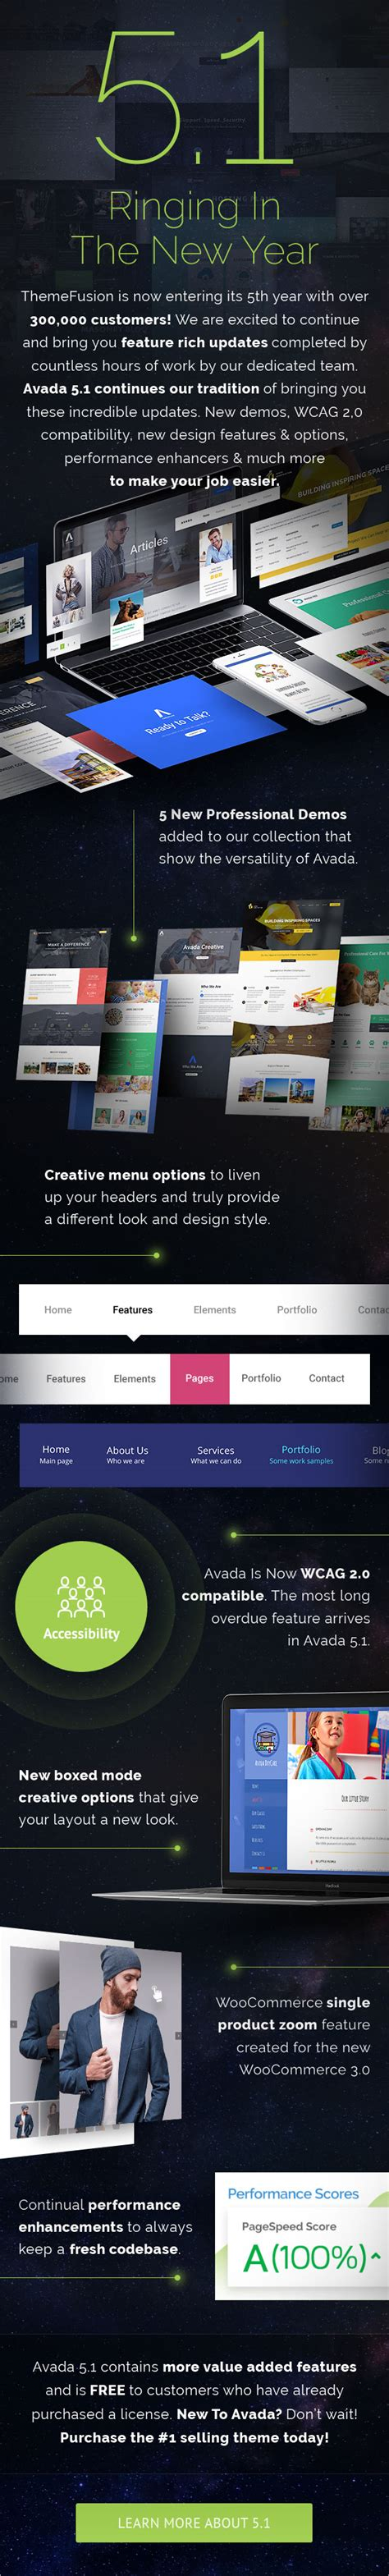 avada theme update notes avada responsive multi purpose theme by themefusion